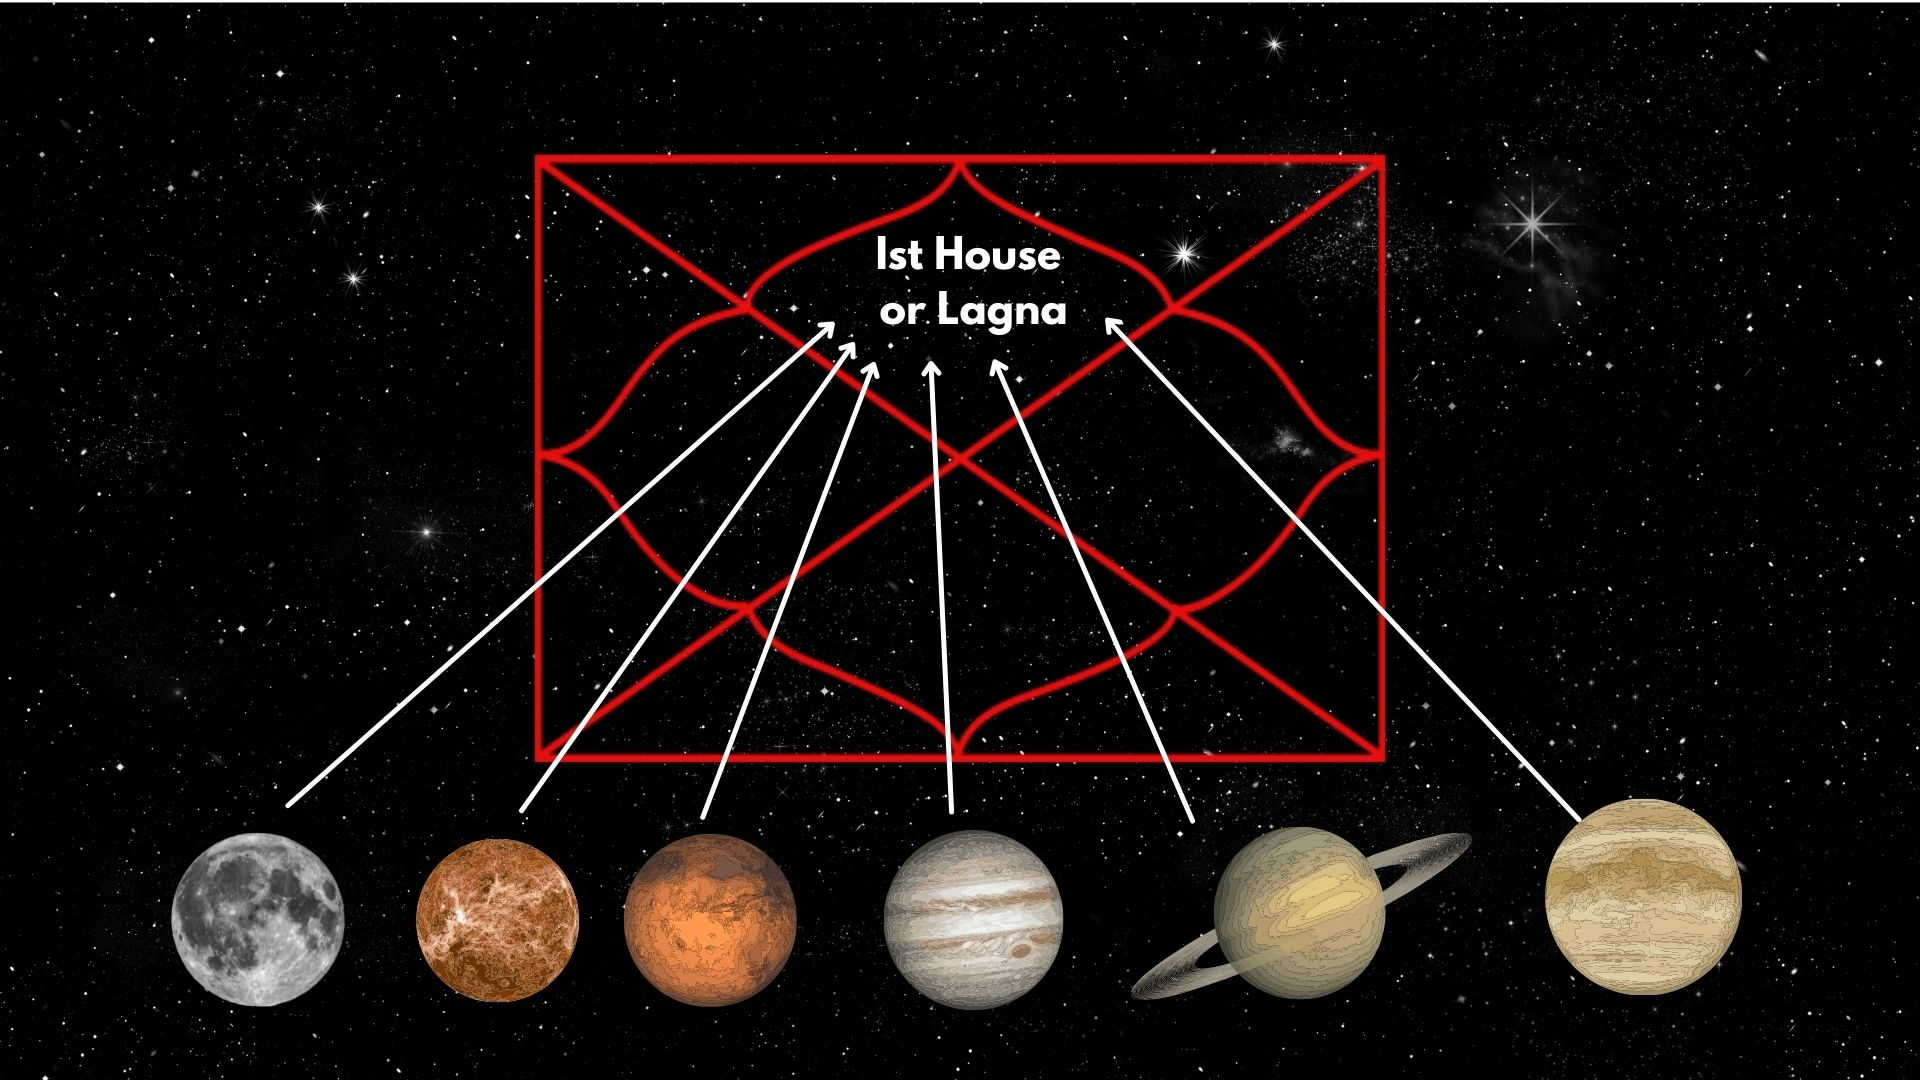 Which planet is aspecting your 1st house